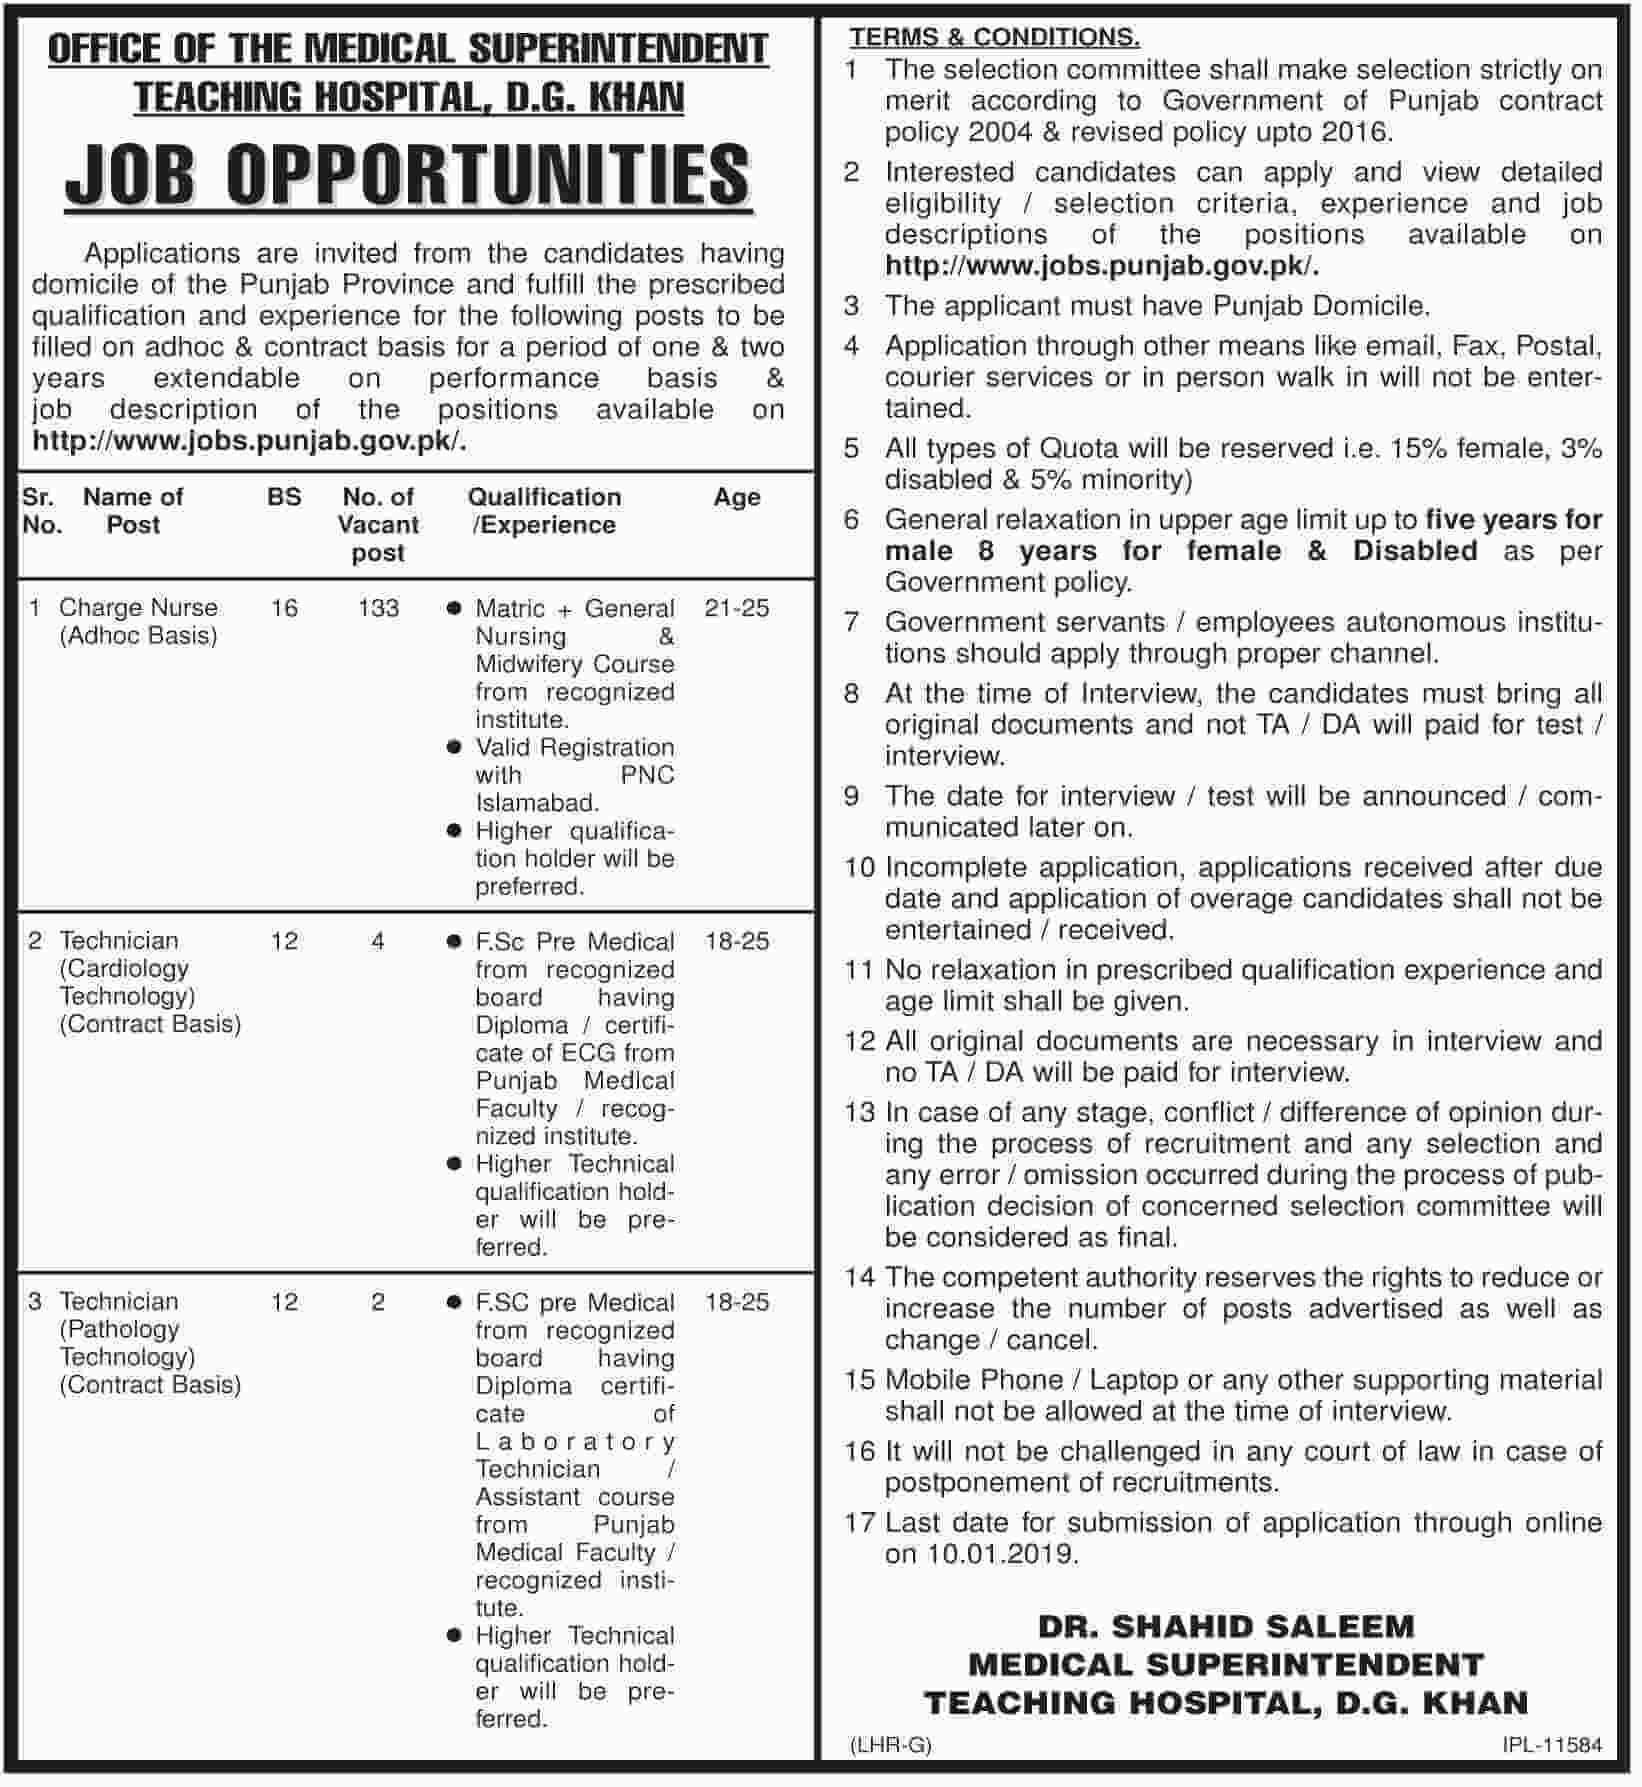 Teaching Hospital D.G Khan Jobs 2019 Government Jobs Apply Online  in Punjab on December, 2018 | Government